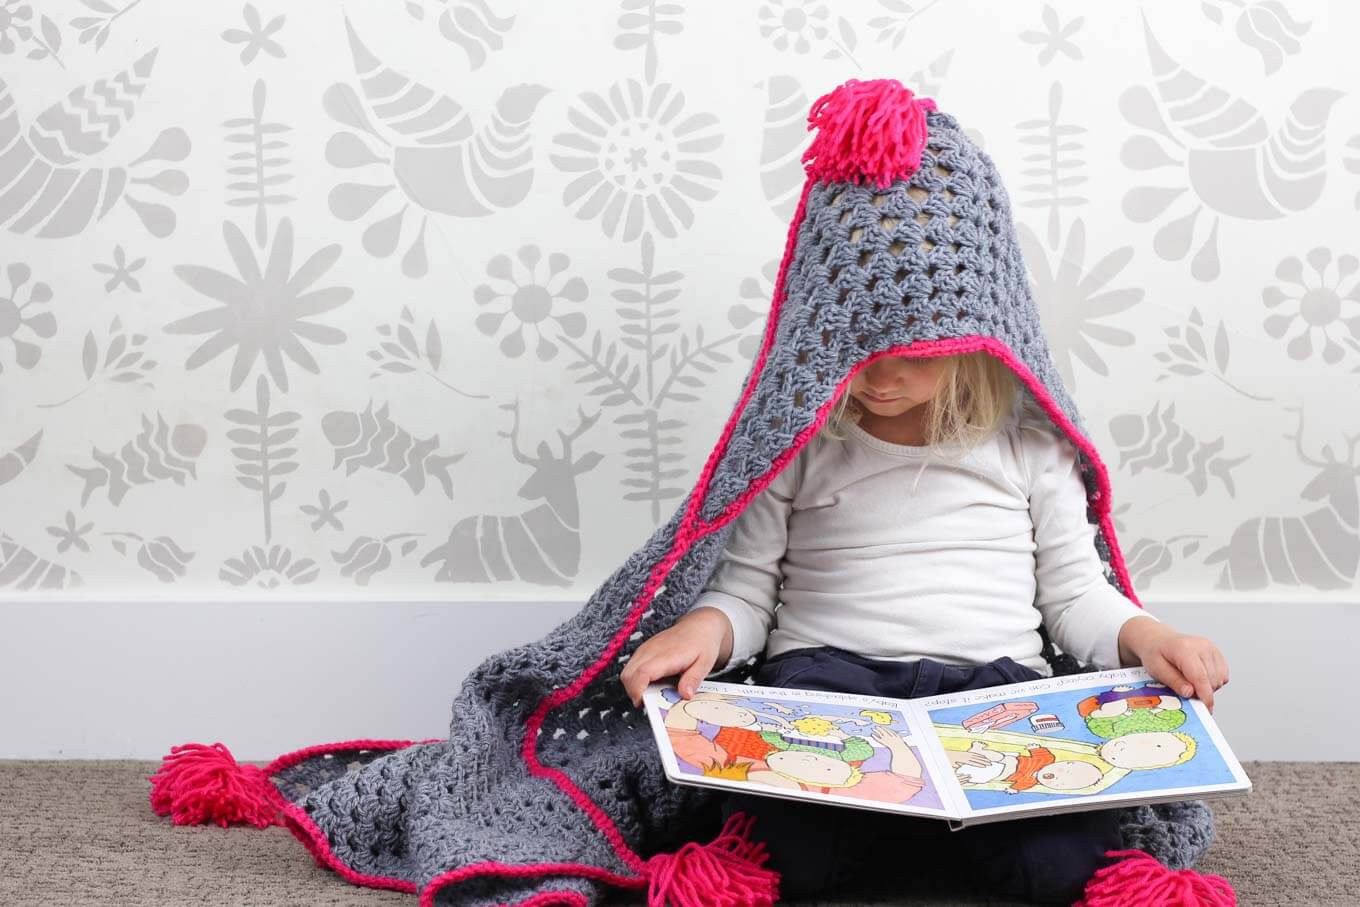 Modern Crochet Patterns Inspirational Modern Crochet Hooded Baby Blanket Free Pattern for Charity Of Adorable 44 Pictures Modern Crochet Patterns